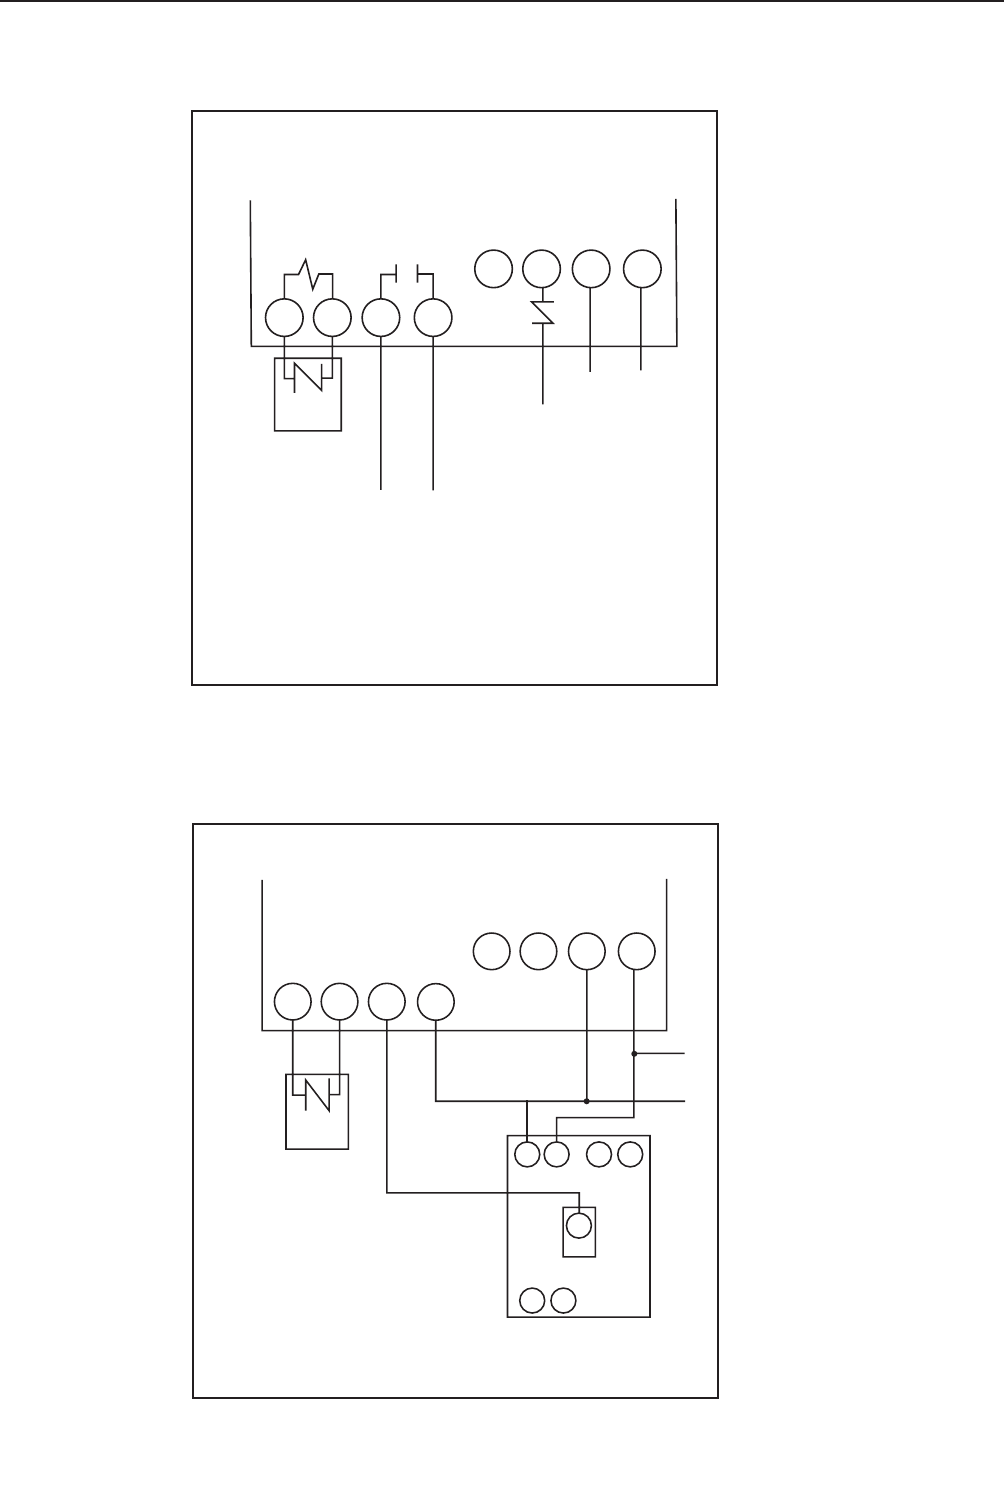 Accel Dfi Wiring Diagram Schematic Diagrams For Distributor 71100e Block And U2022 Ford Msd Ignition